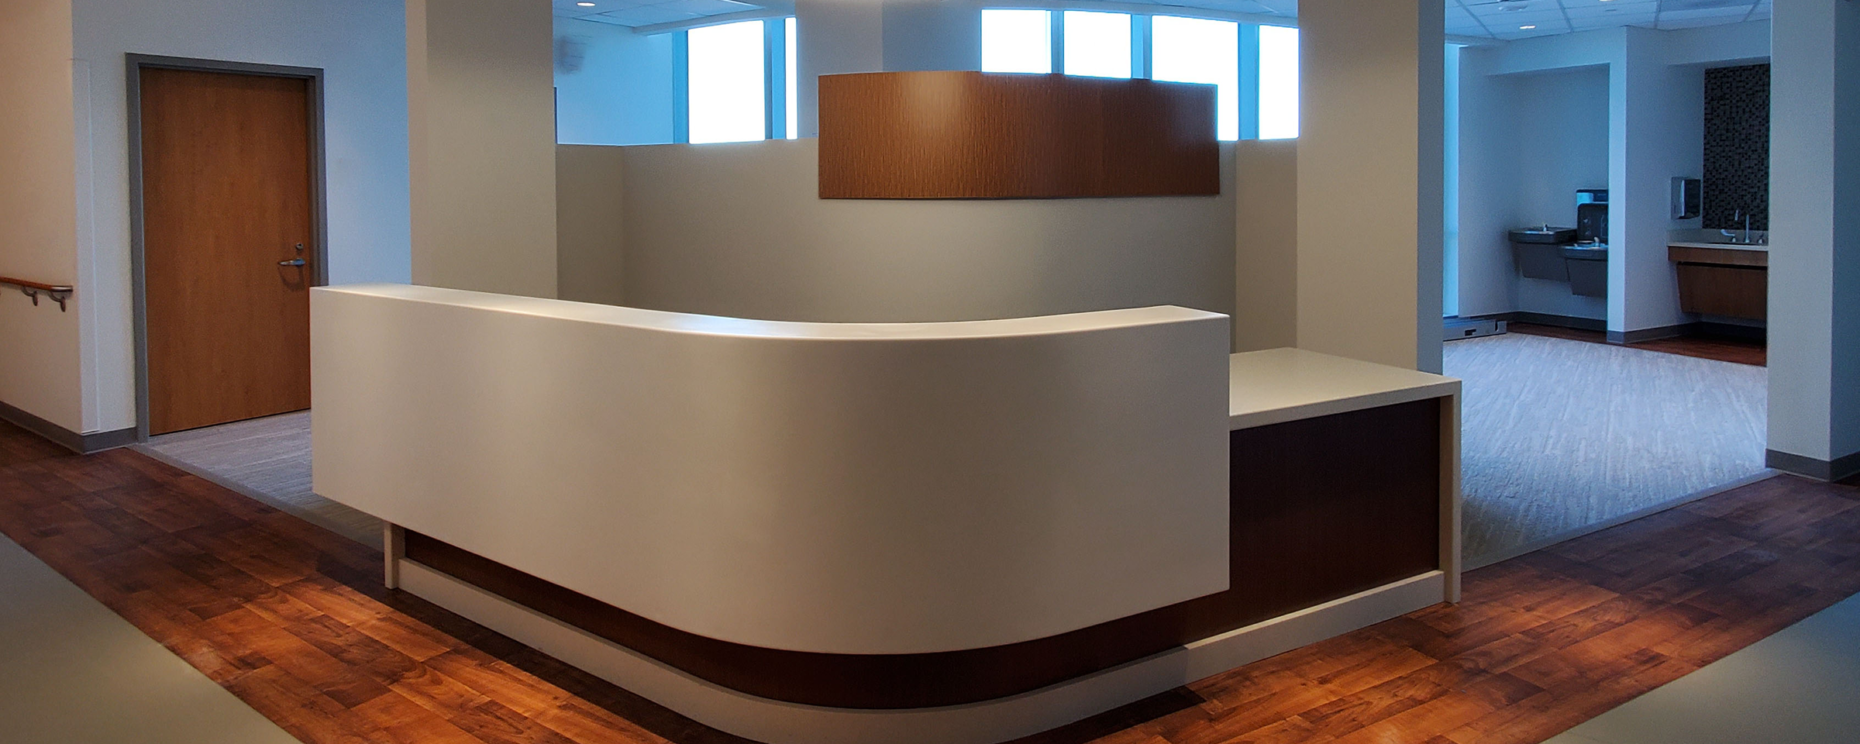 Inova Loudon Hospital North Patient Tower, Leesburg, VA. Nurse's Station Custom Millwork and Solid Surfaces Architecture: HDR General Contractor: DPR Construction